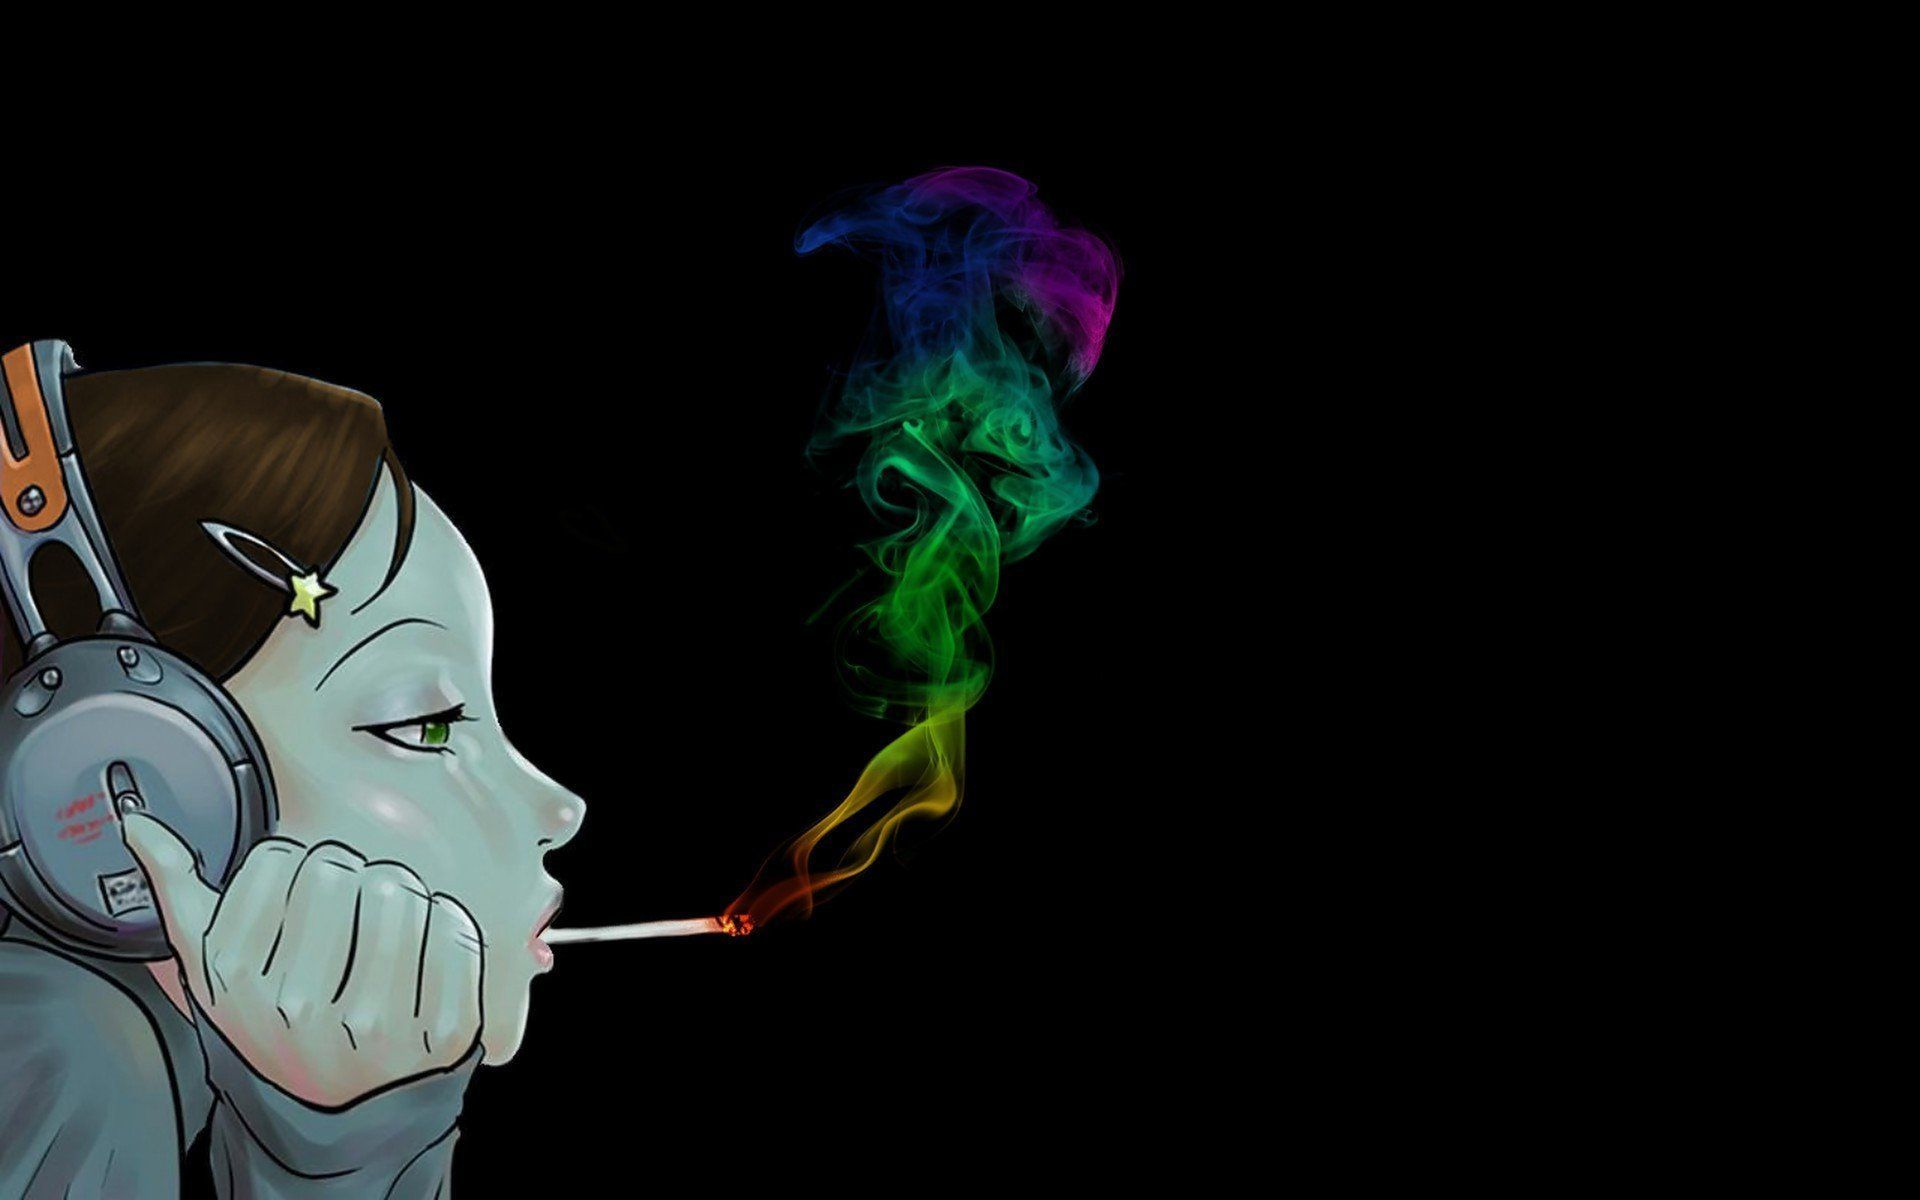 1920x1200 Wiz Khalifa Smoking Wallpaper | Stoner Girls | Pinterest | Wiz ...